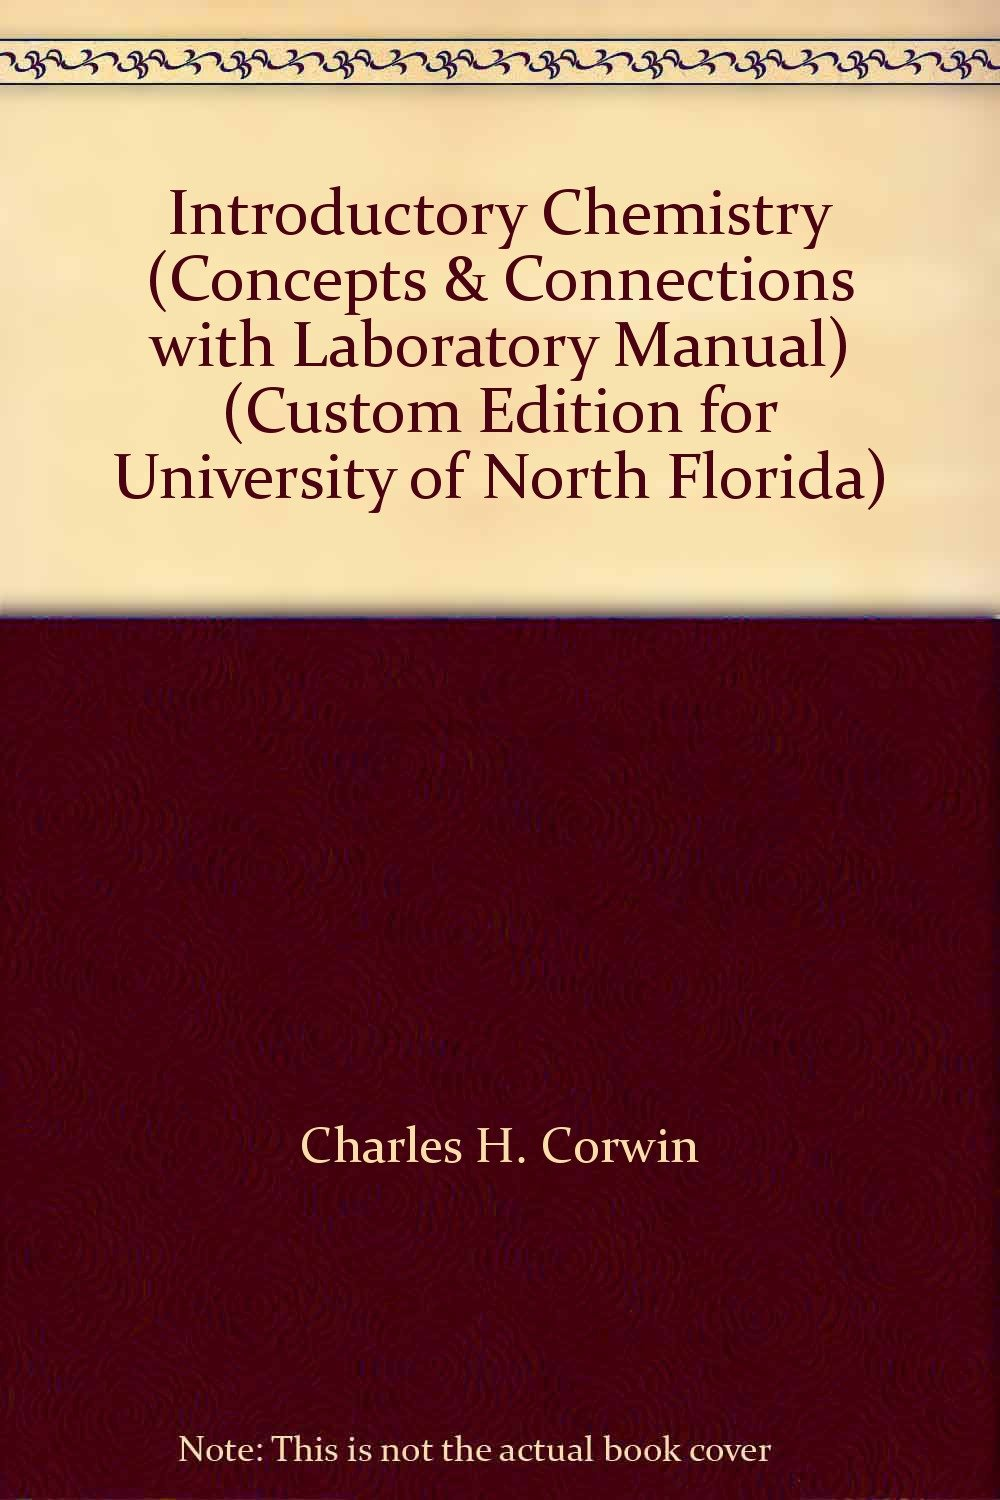 Introductory Chemistry (Concepts & Connections with Laboratory Manual)  (Custom Edition for University of North Florida): Charles H. Corwin:  9780536509185: ...